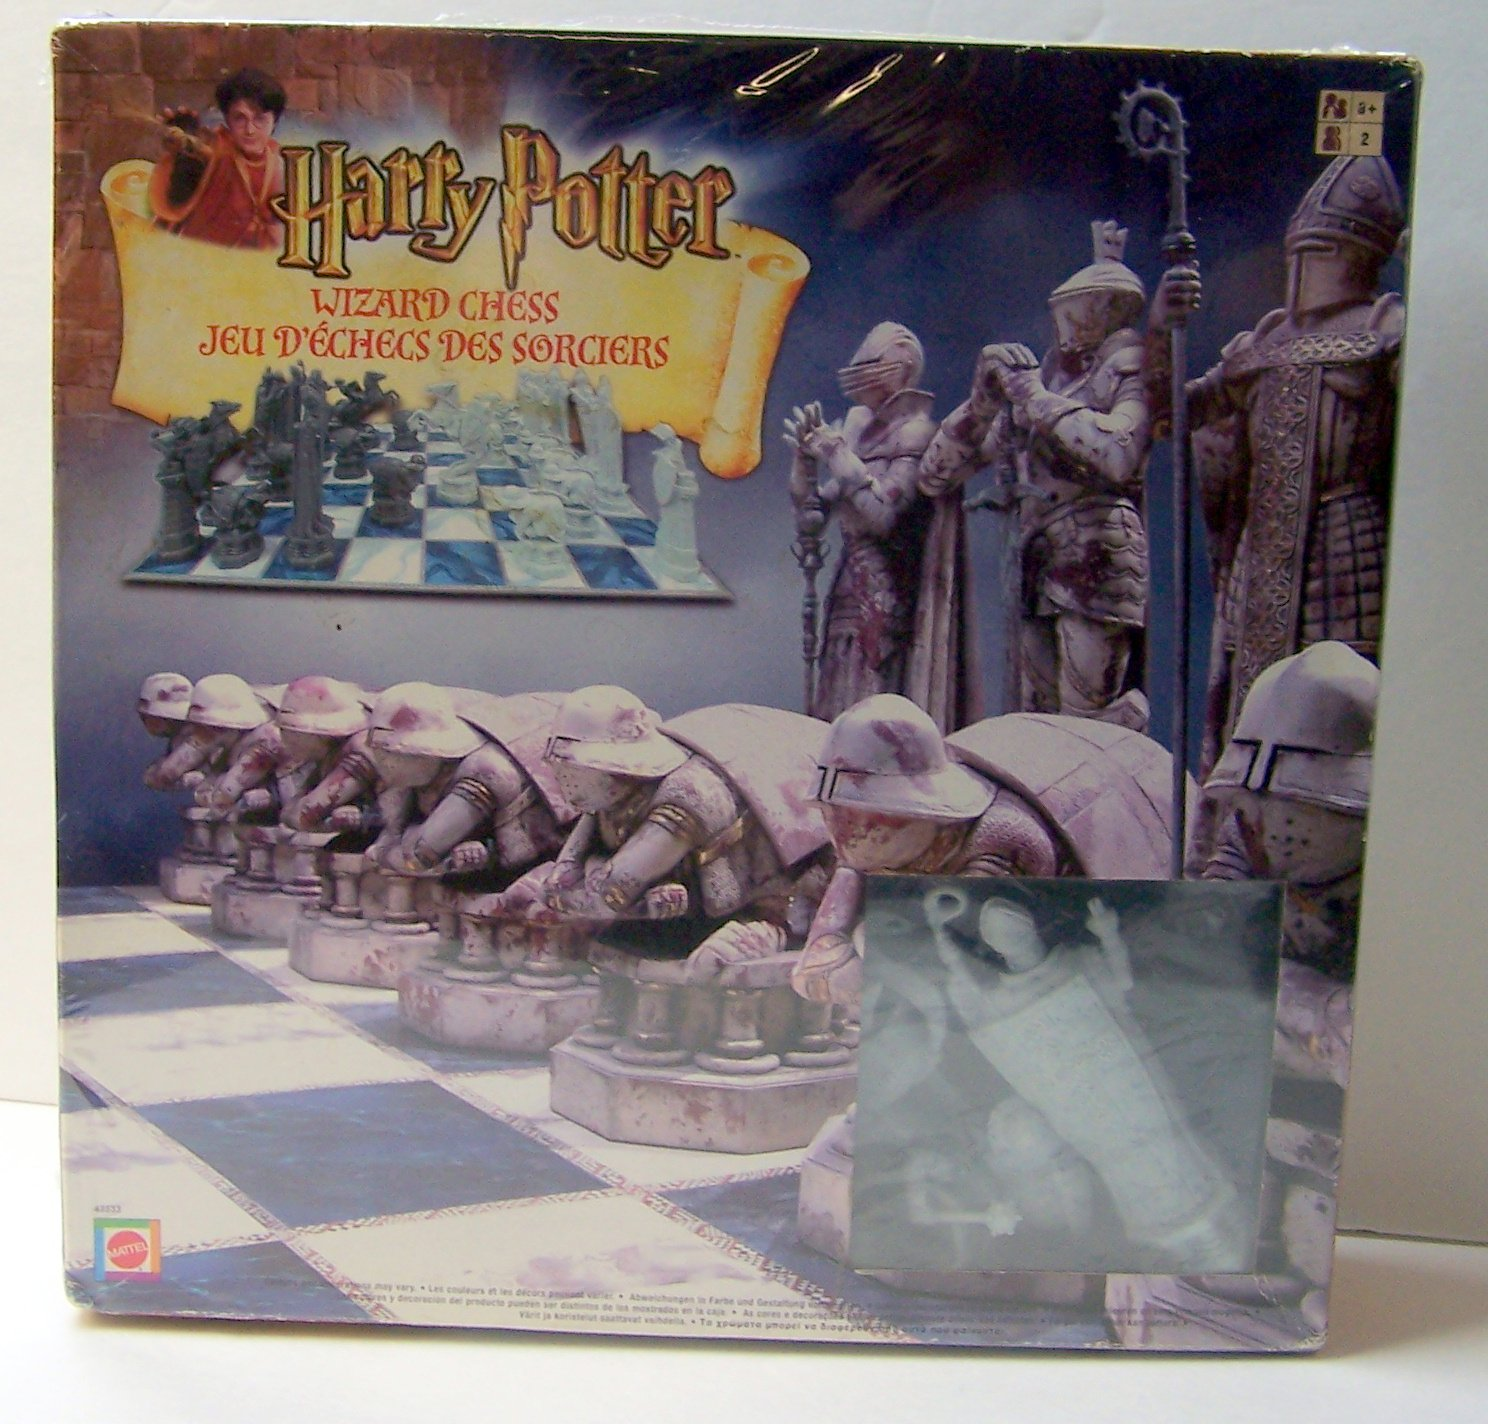 Harry Potter Wizard Chess by Mattel